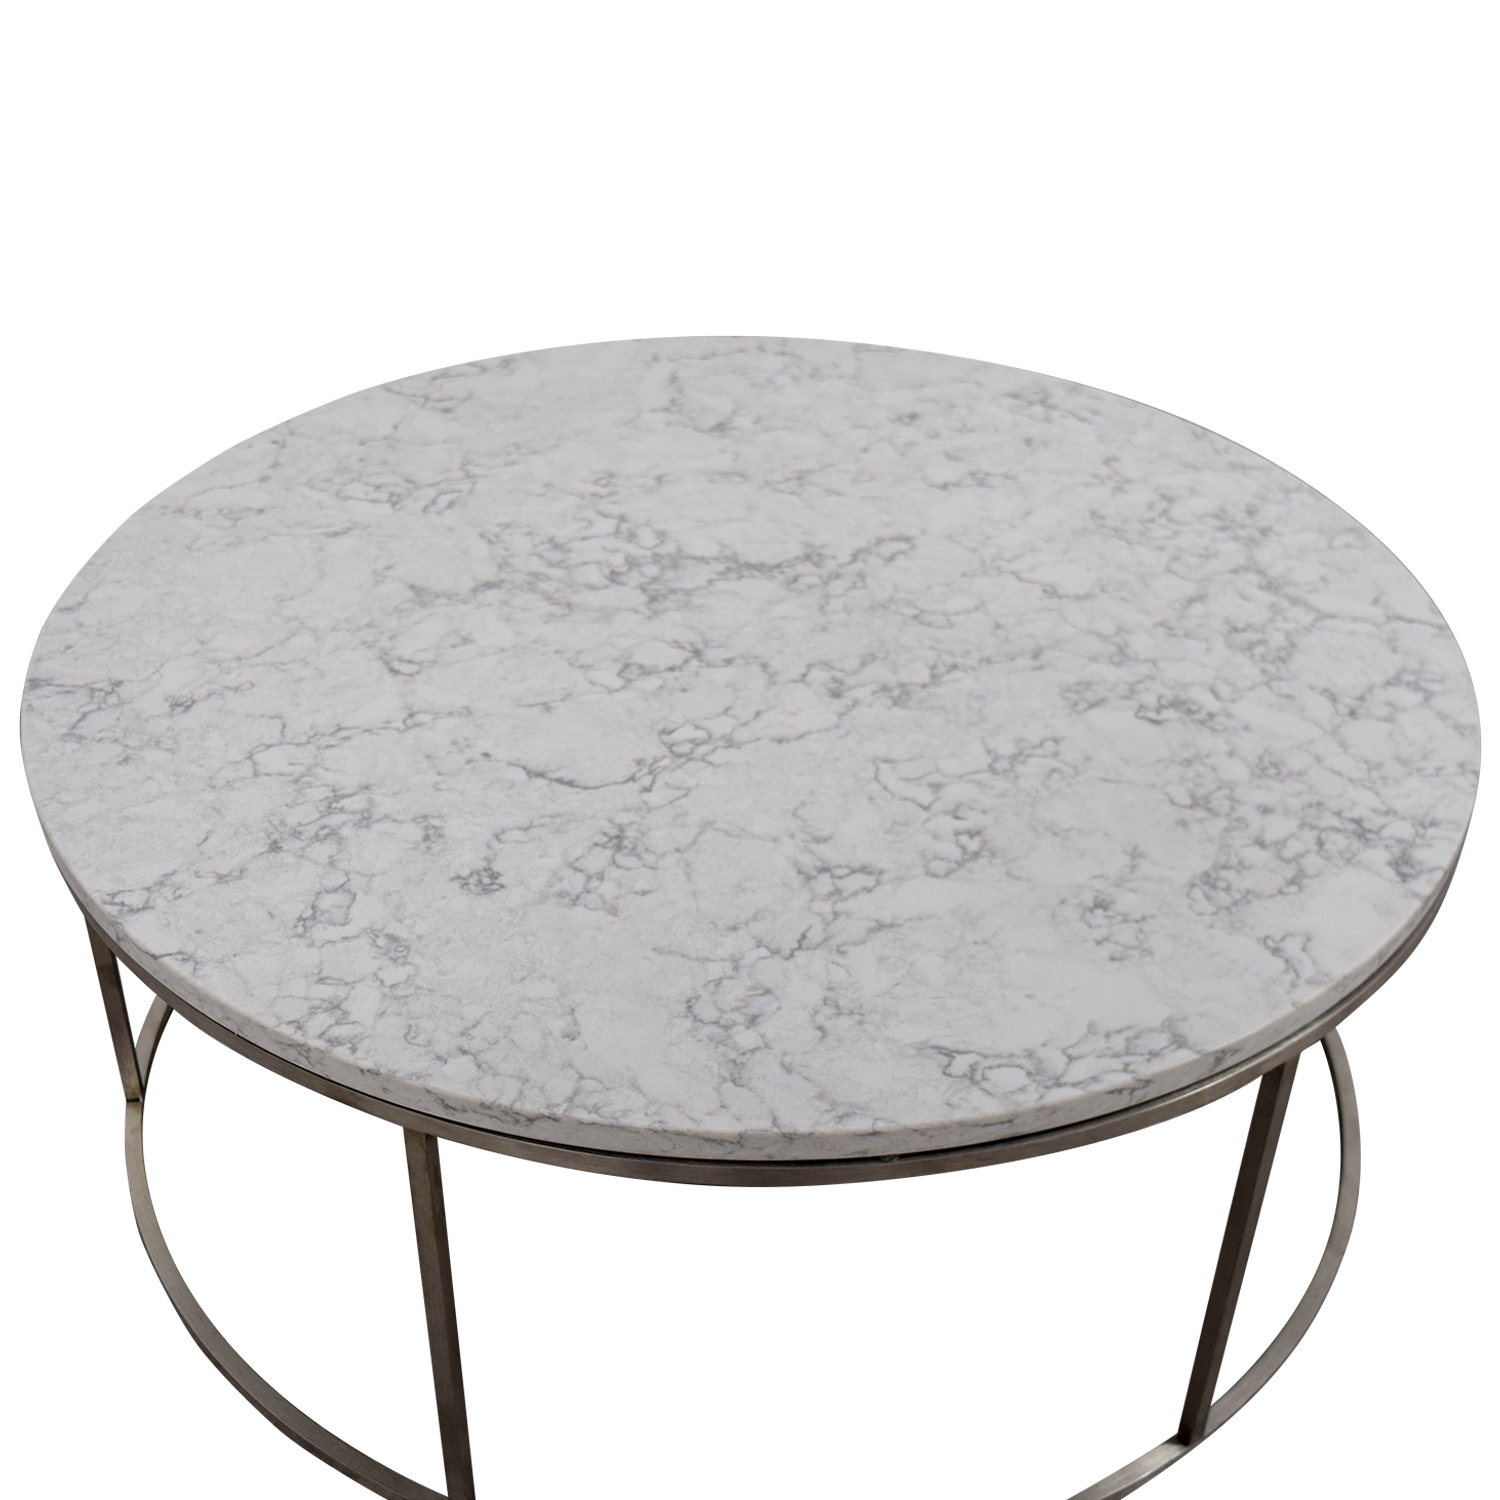 53 off room board room board round marble top coffee table tables Round marble coffee tables